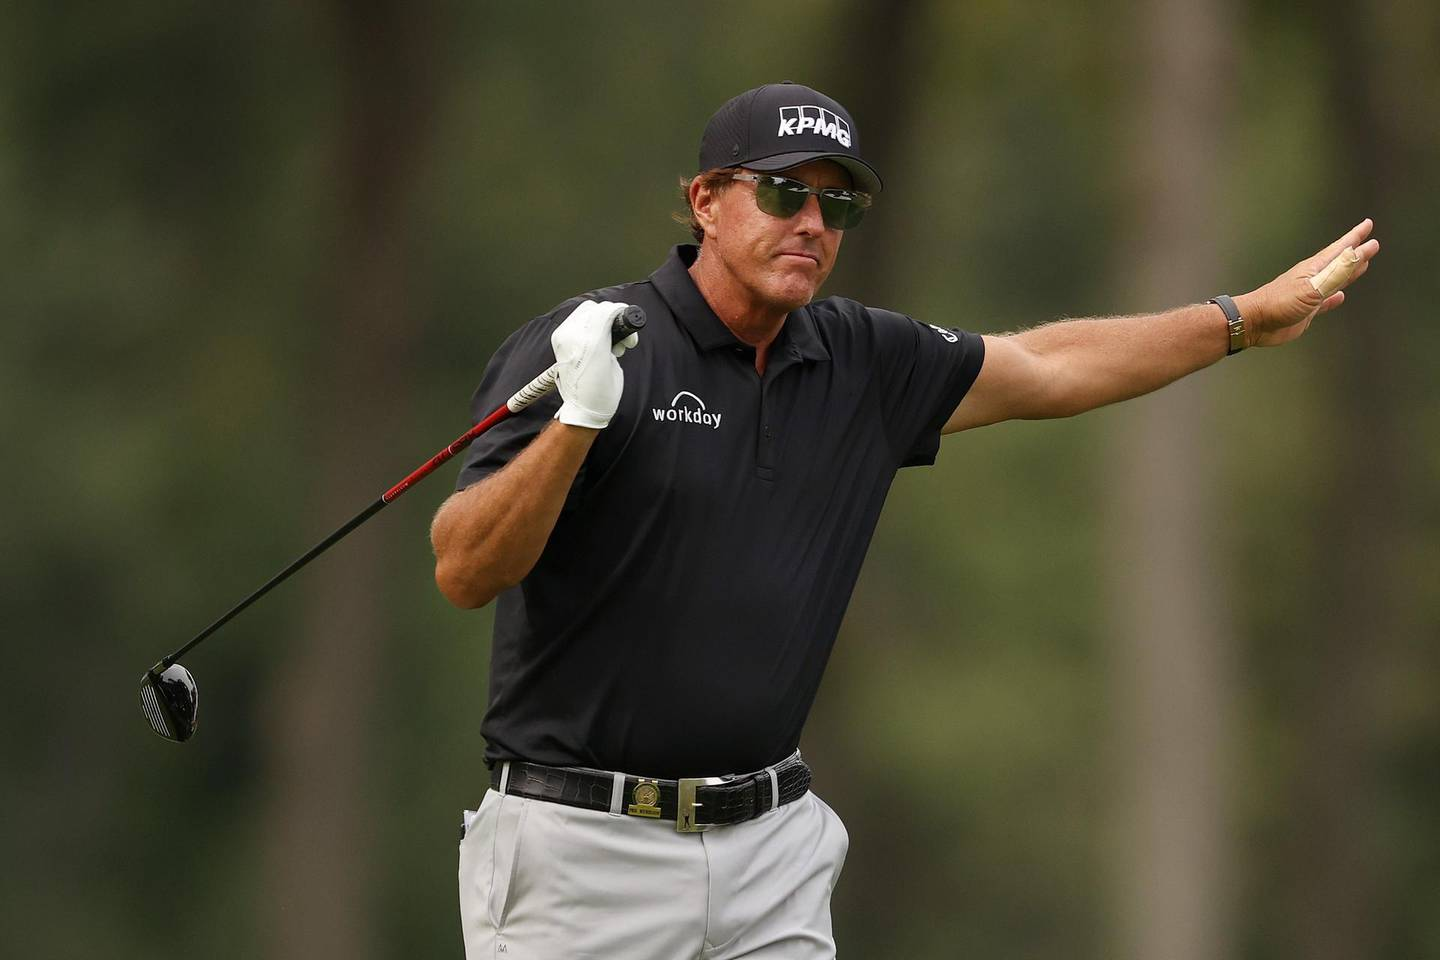 MAMARONECK, NEW YORK - SEPTEMBER 17: Phil Mickelson of the United States reacts to his shot from the eighth tee during the first round of the 120th U.S. Open Championship on September 17, 2020 at Winged Foot Golf Club in Mamaroneck, New York.   Gregory Shamus/Getty Images/AFP == FOR NEWSPAPERS, INTERNET, TELCOS & TELEVISION USE ONLY ==